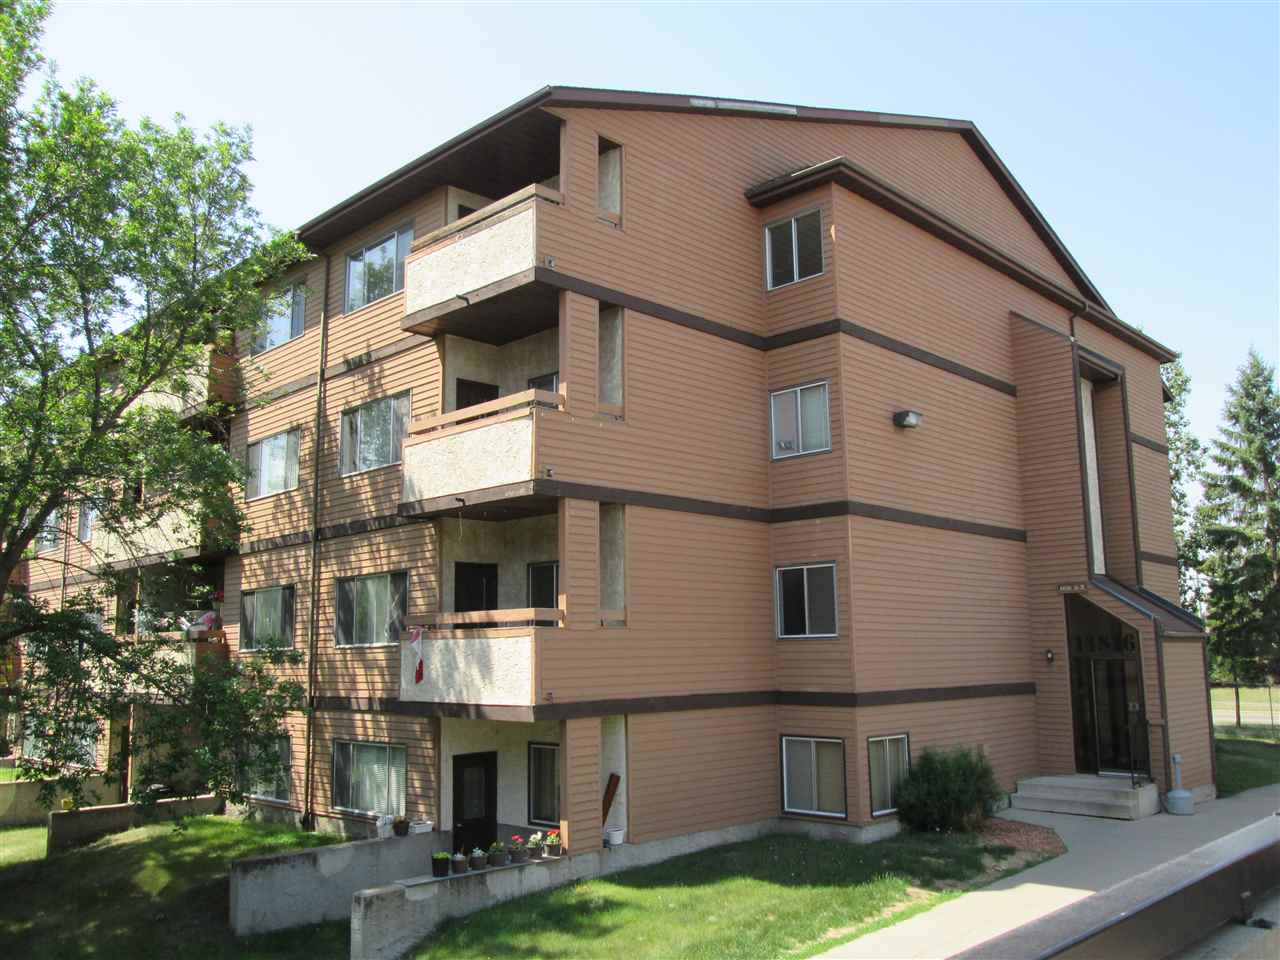 401 14816 26 Street, 2 bed, 1 bath, at $75,900